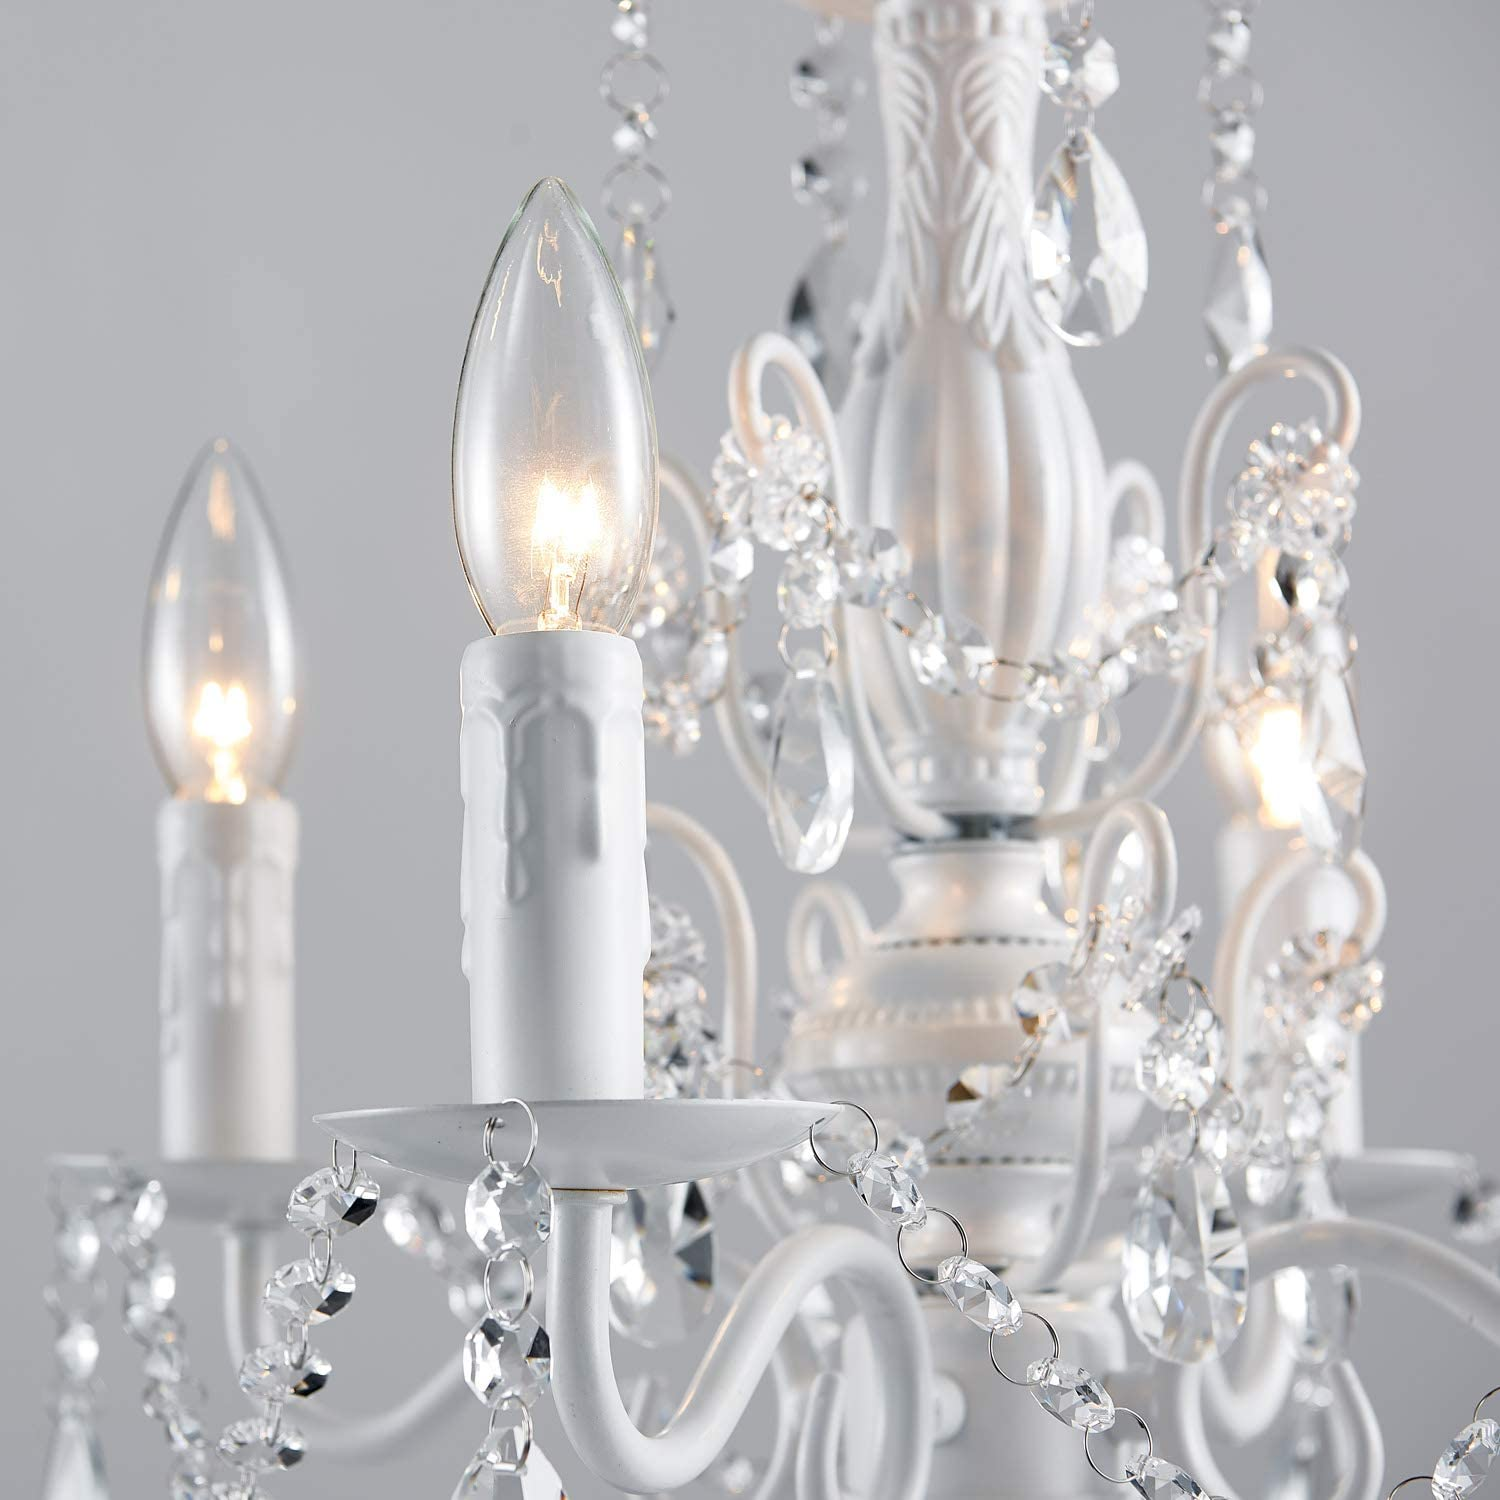 Saint Mossi Crystal Chandelier with 5 Lights,Modern LED Ceiling Light Fixture,Contemporary Pendant Lighting for Living Room,Bedroom,W15x H18